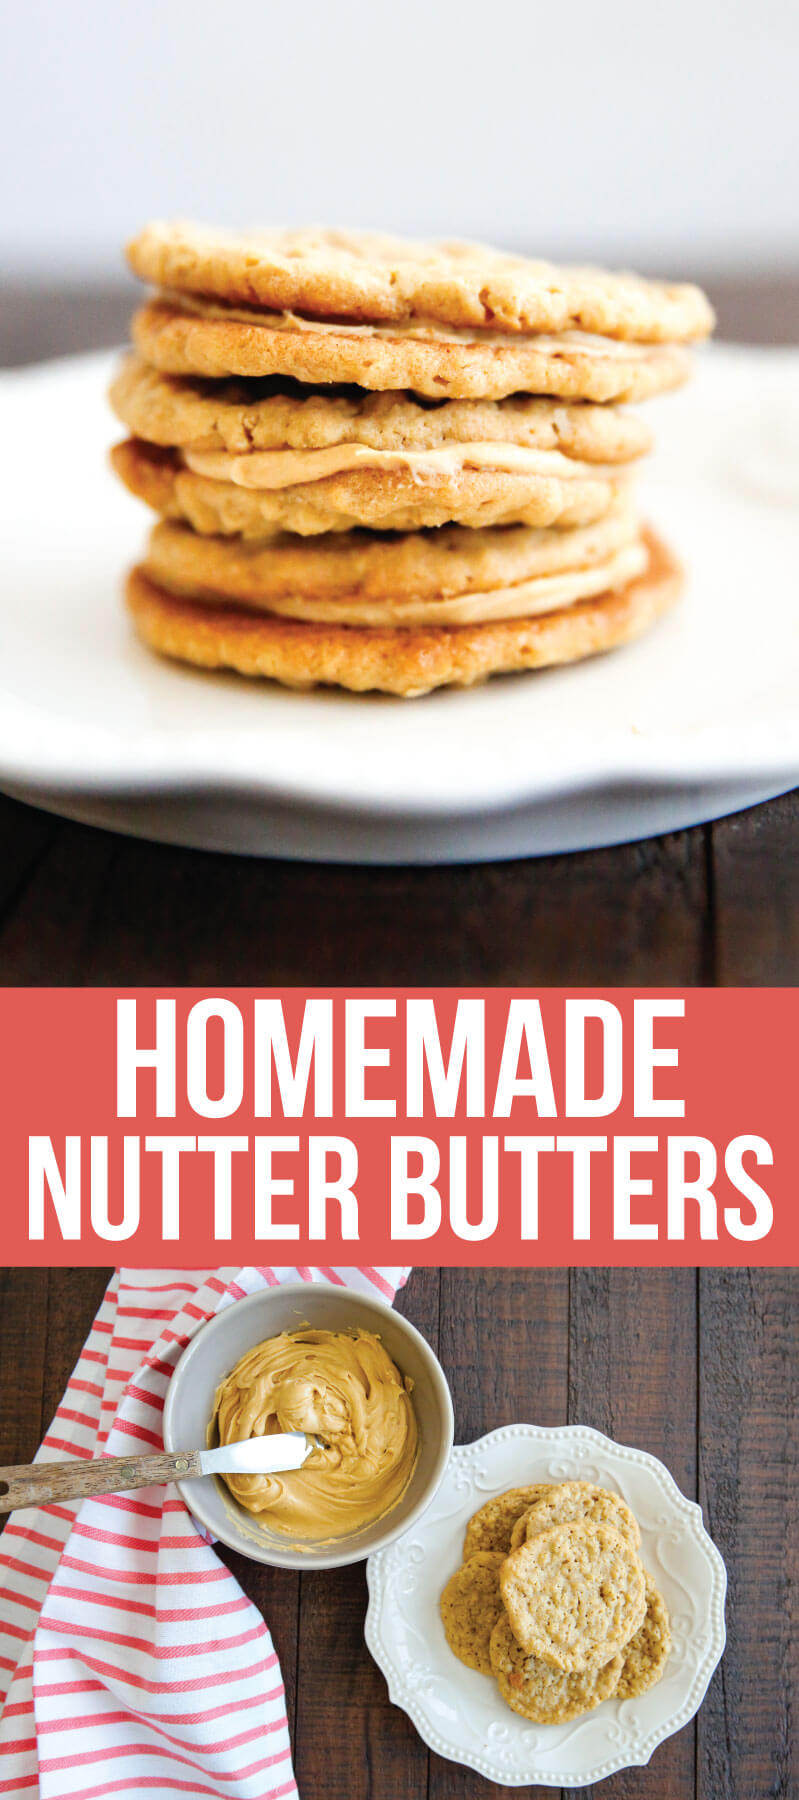 Homemade Nutter Butters- these cookies are like whoopie pies with all things peanut butter. They melt in your mouth!